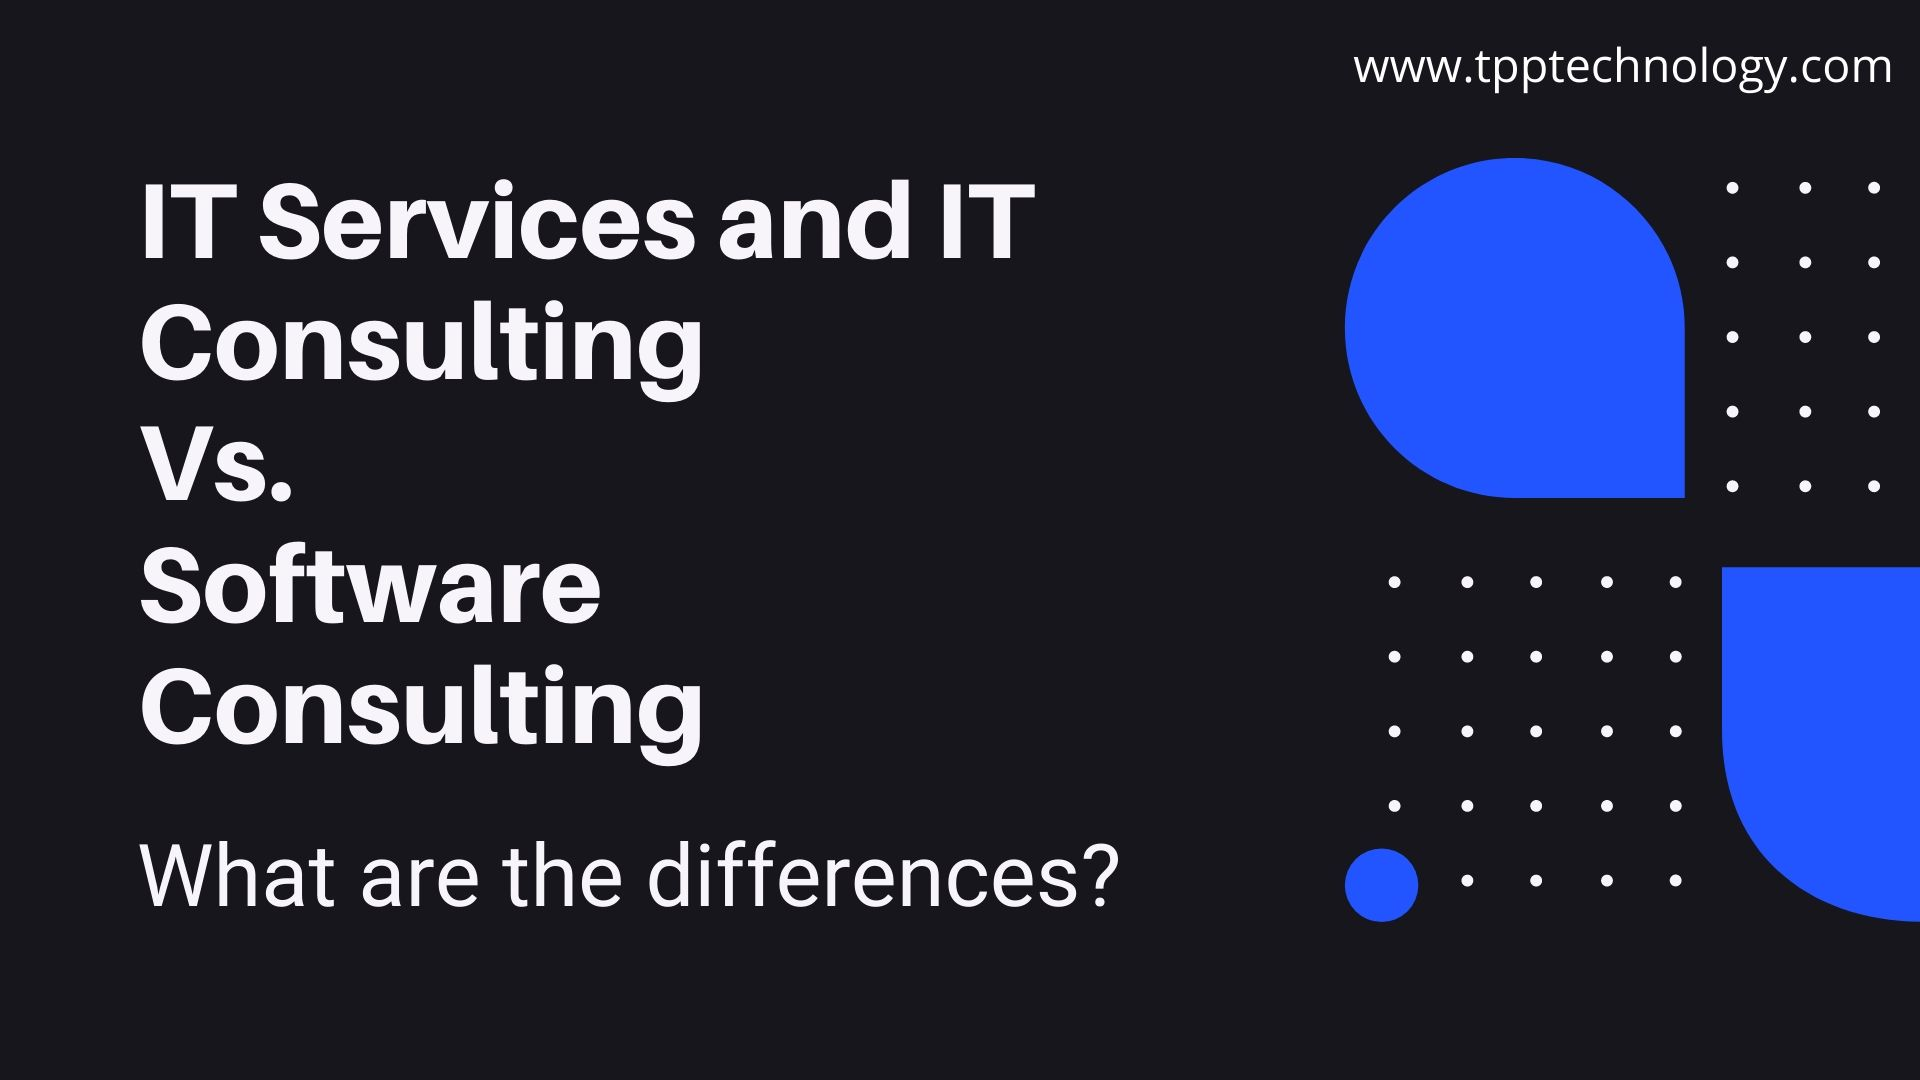 IT Services and IT Consulting vs Software Consulting - what are the differences?